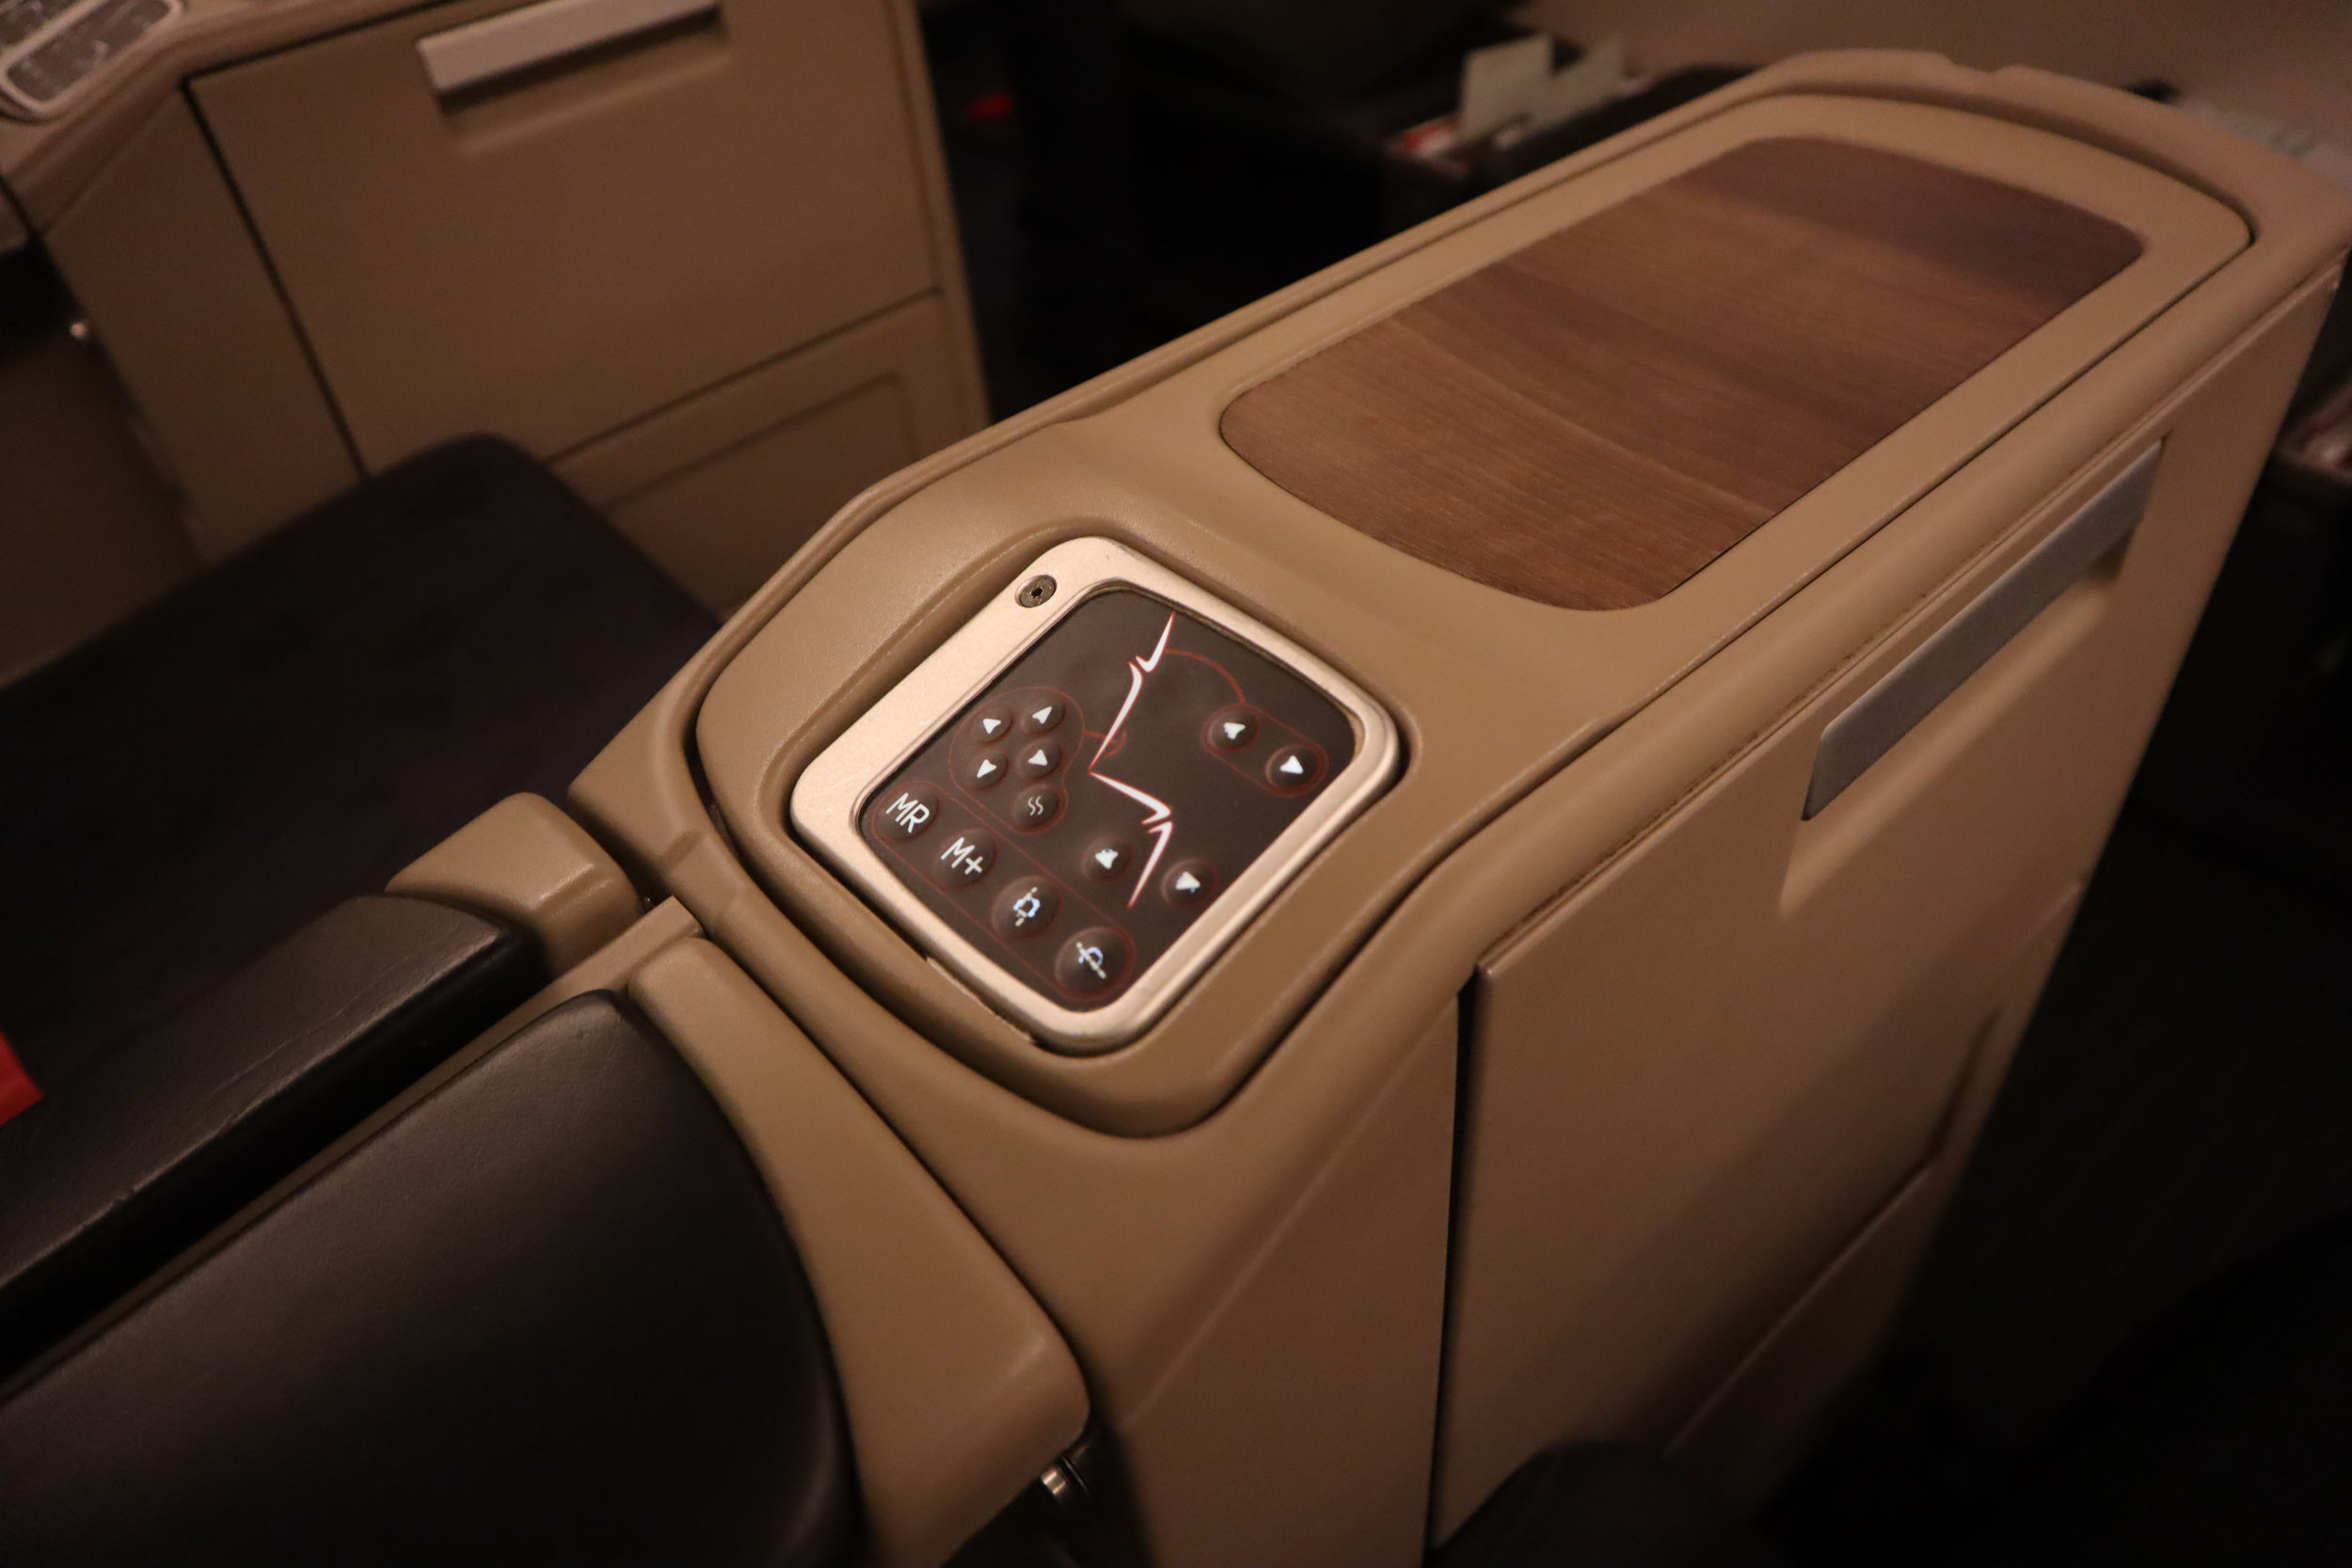 Turkish Airlines 777 business class – Seat console